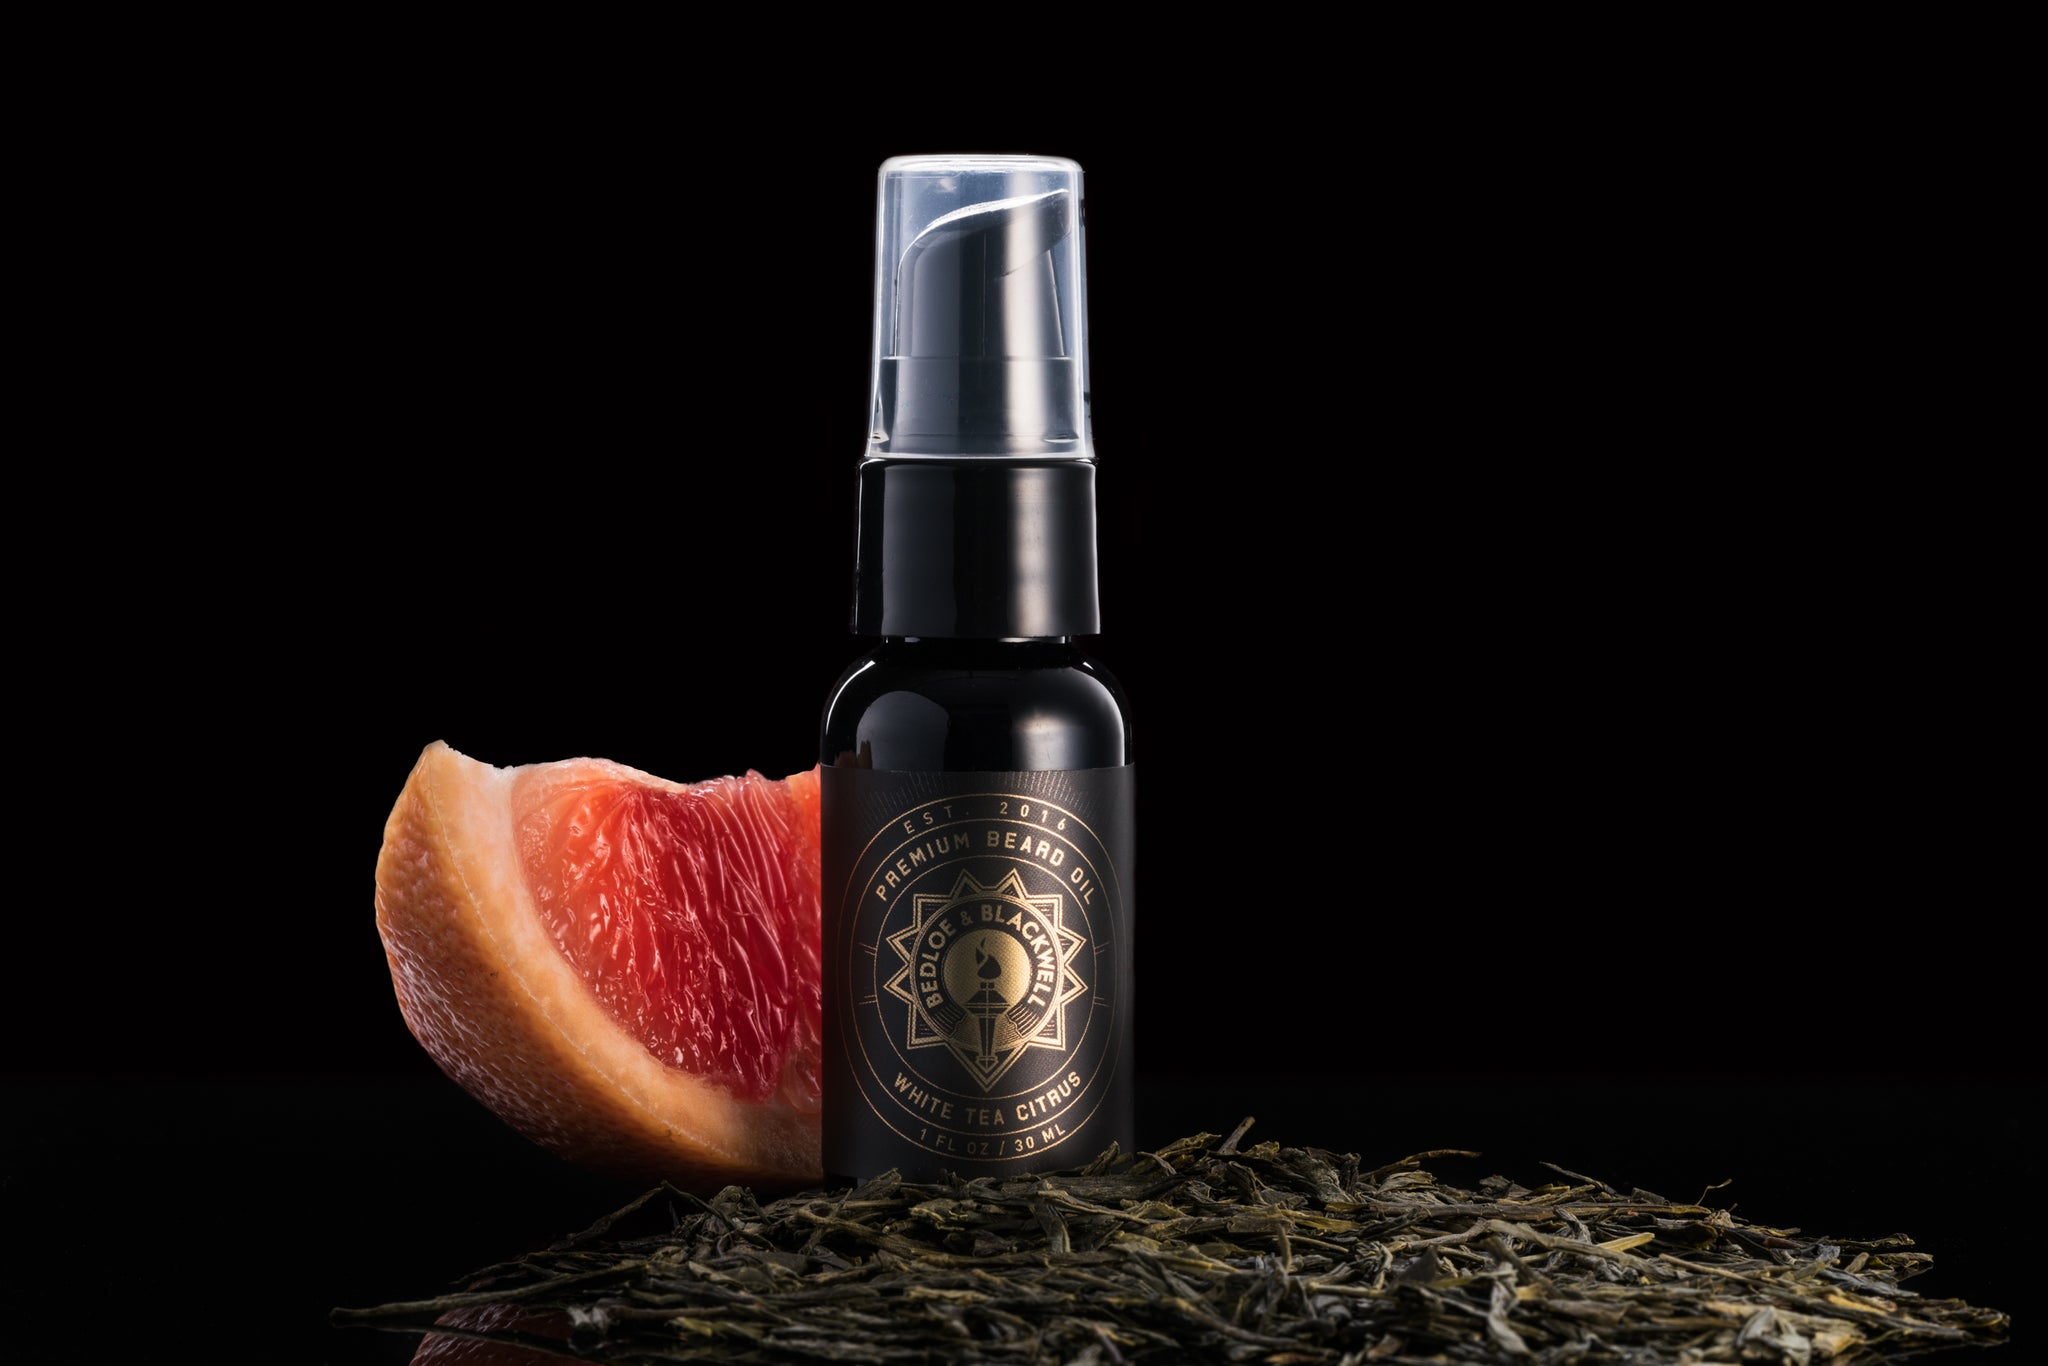 White Tea Citrus Beard Oil